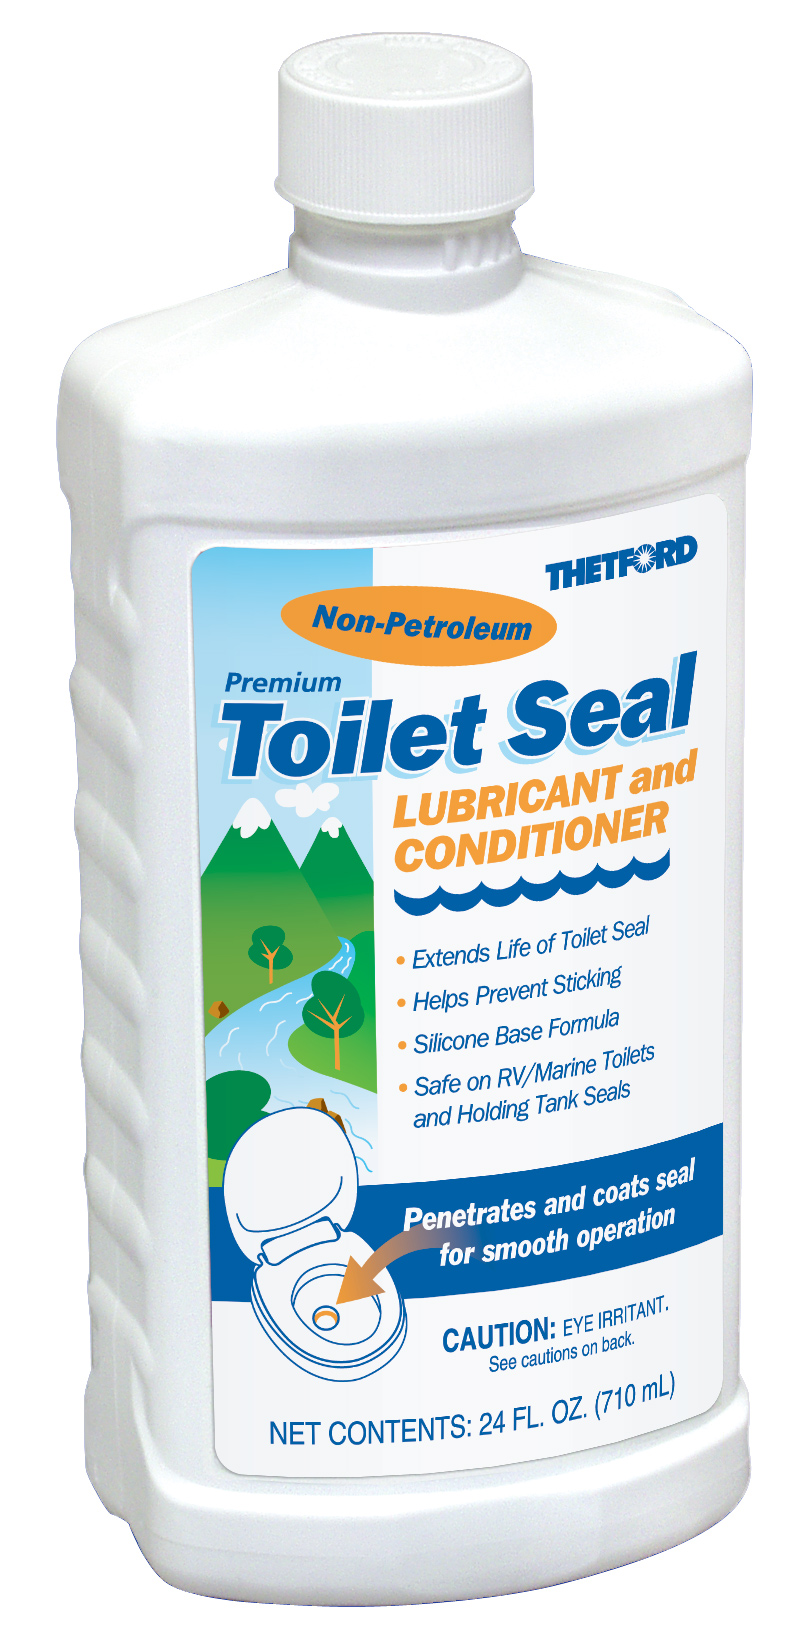 Toilet Seal Lubricant and Conditioner | Products | Thetford